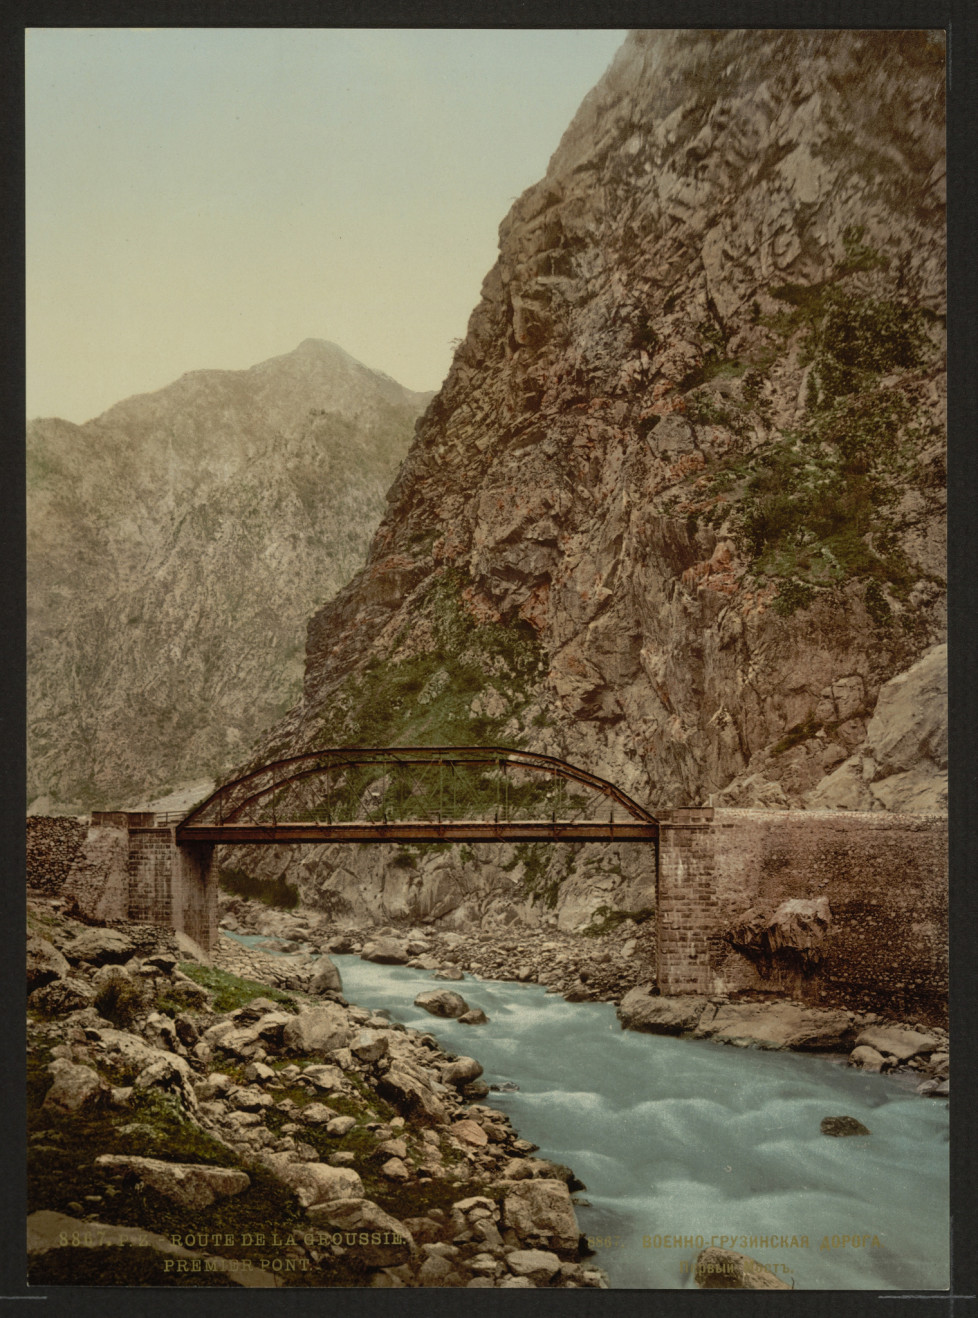 The road, the first bridge, Groussie, (i.e., Georgia) between 1890 - 1900 (c) Library of Congress